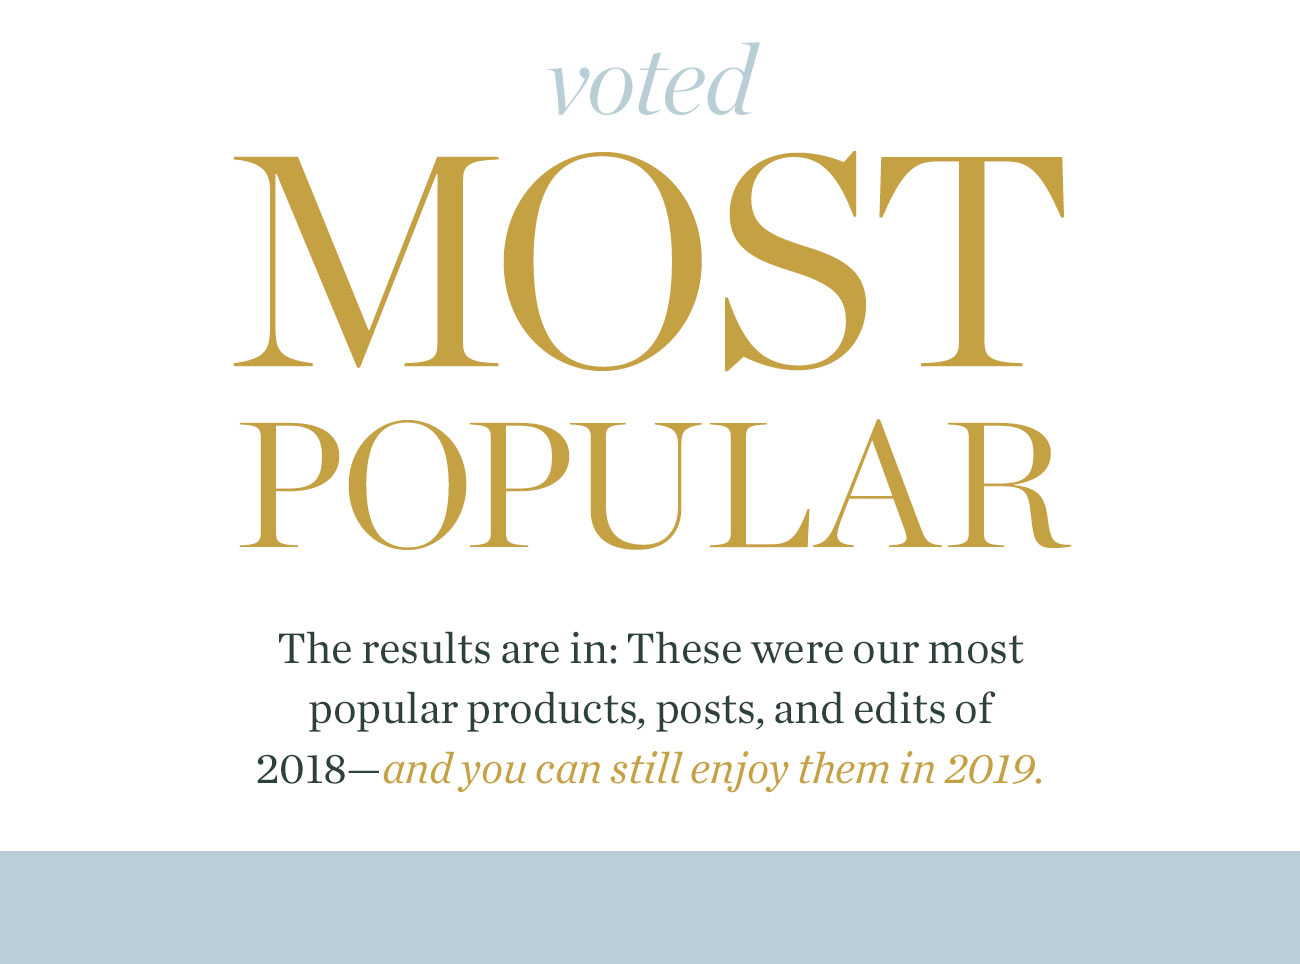 Voted Most Popular of 2018